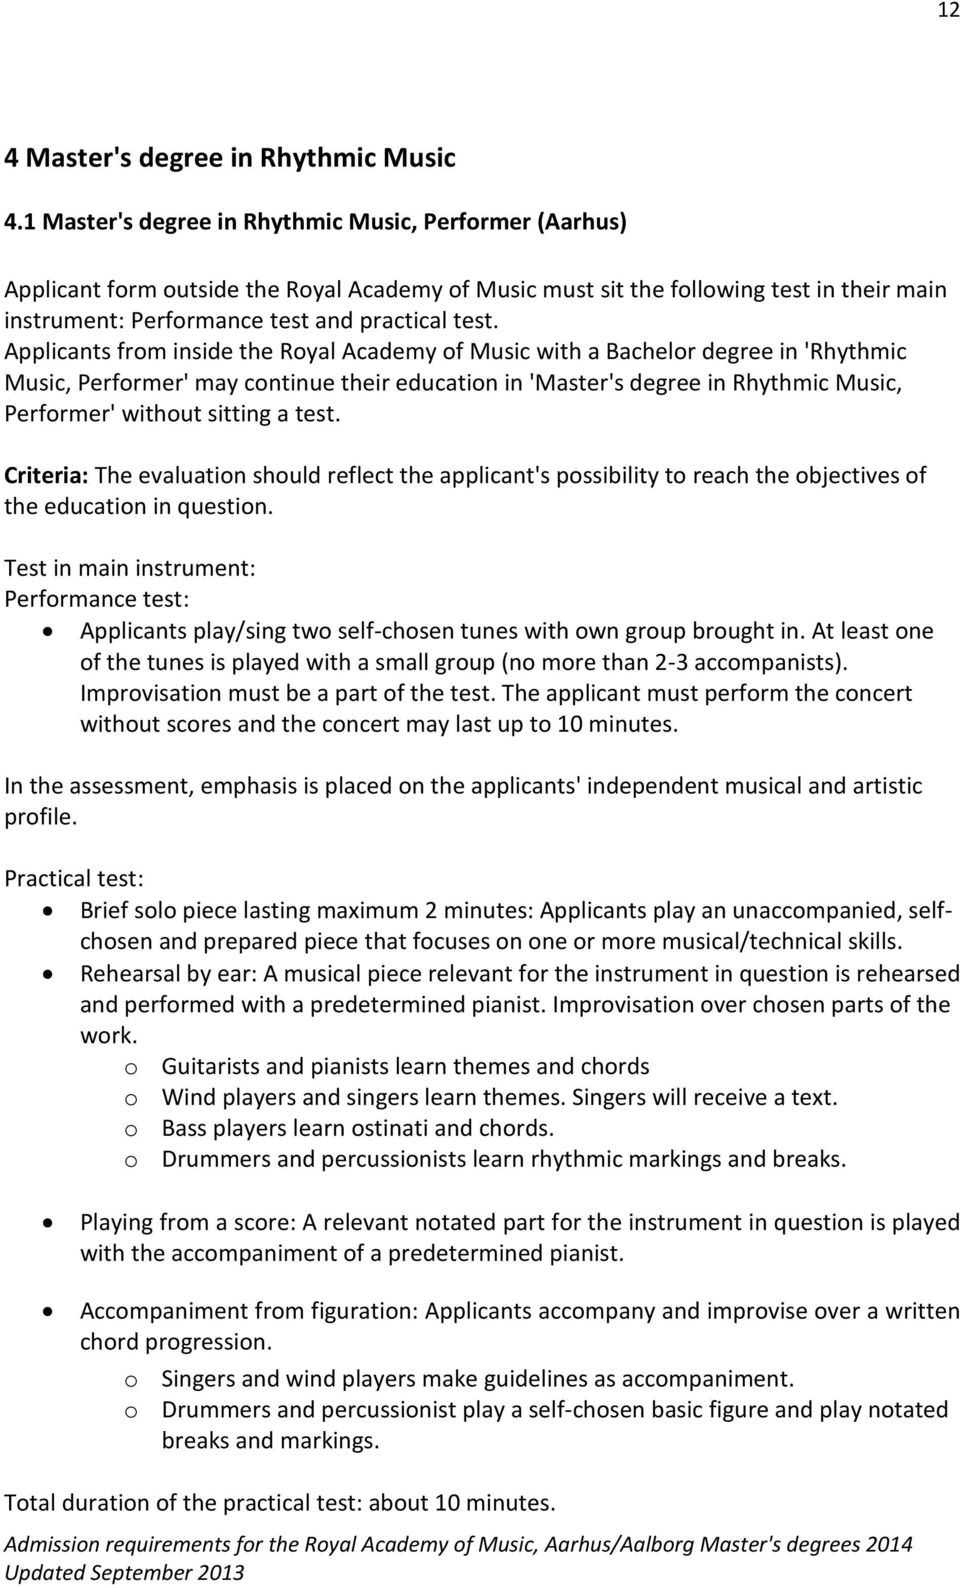 Applicants from inside the Royal Academy of Music with a Bachelor degree in 'Rhythmic Music, Performer' may continue their education in 'Master's degree in Rhythmic Music, Performer' without sitting